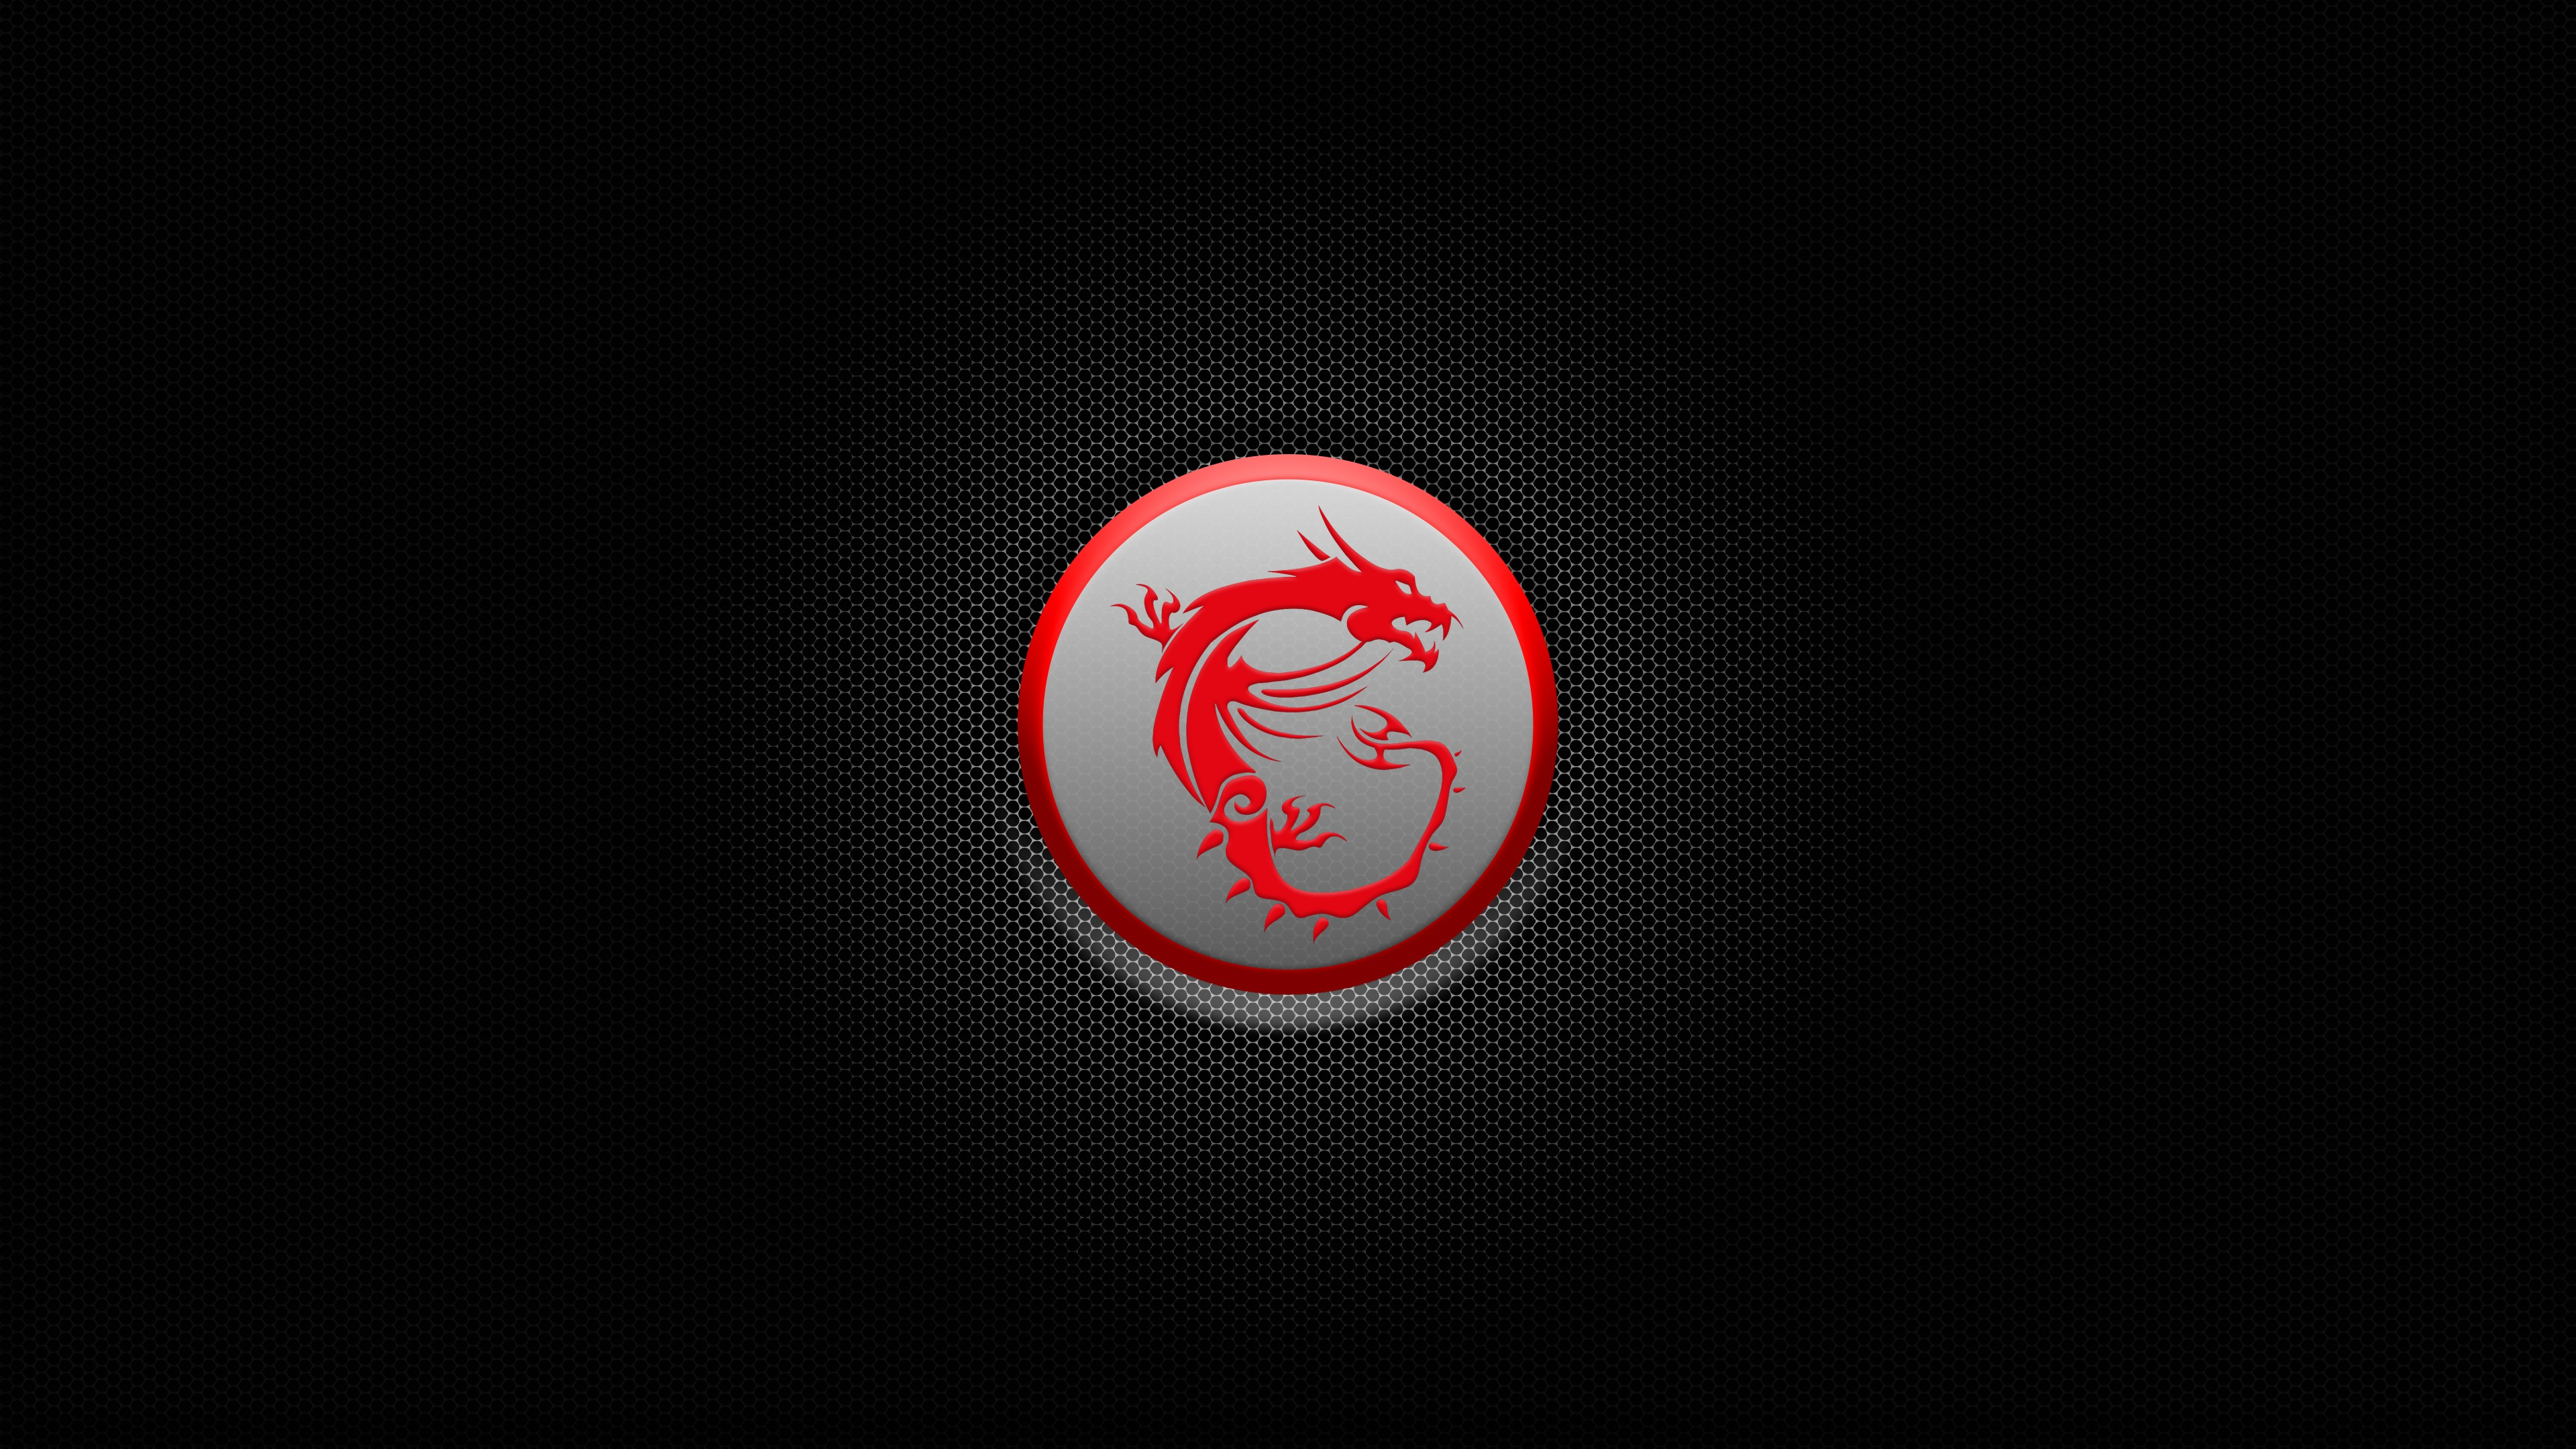 MSI Wallpaper 14